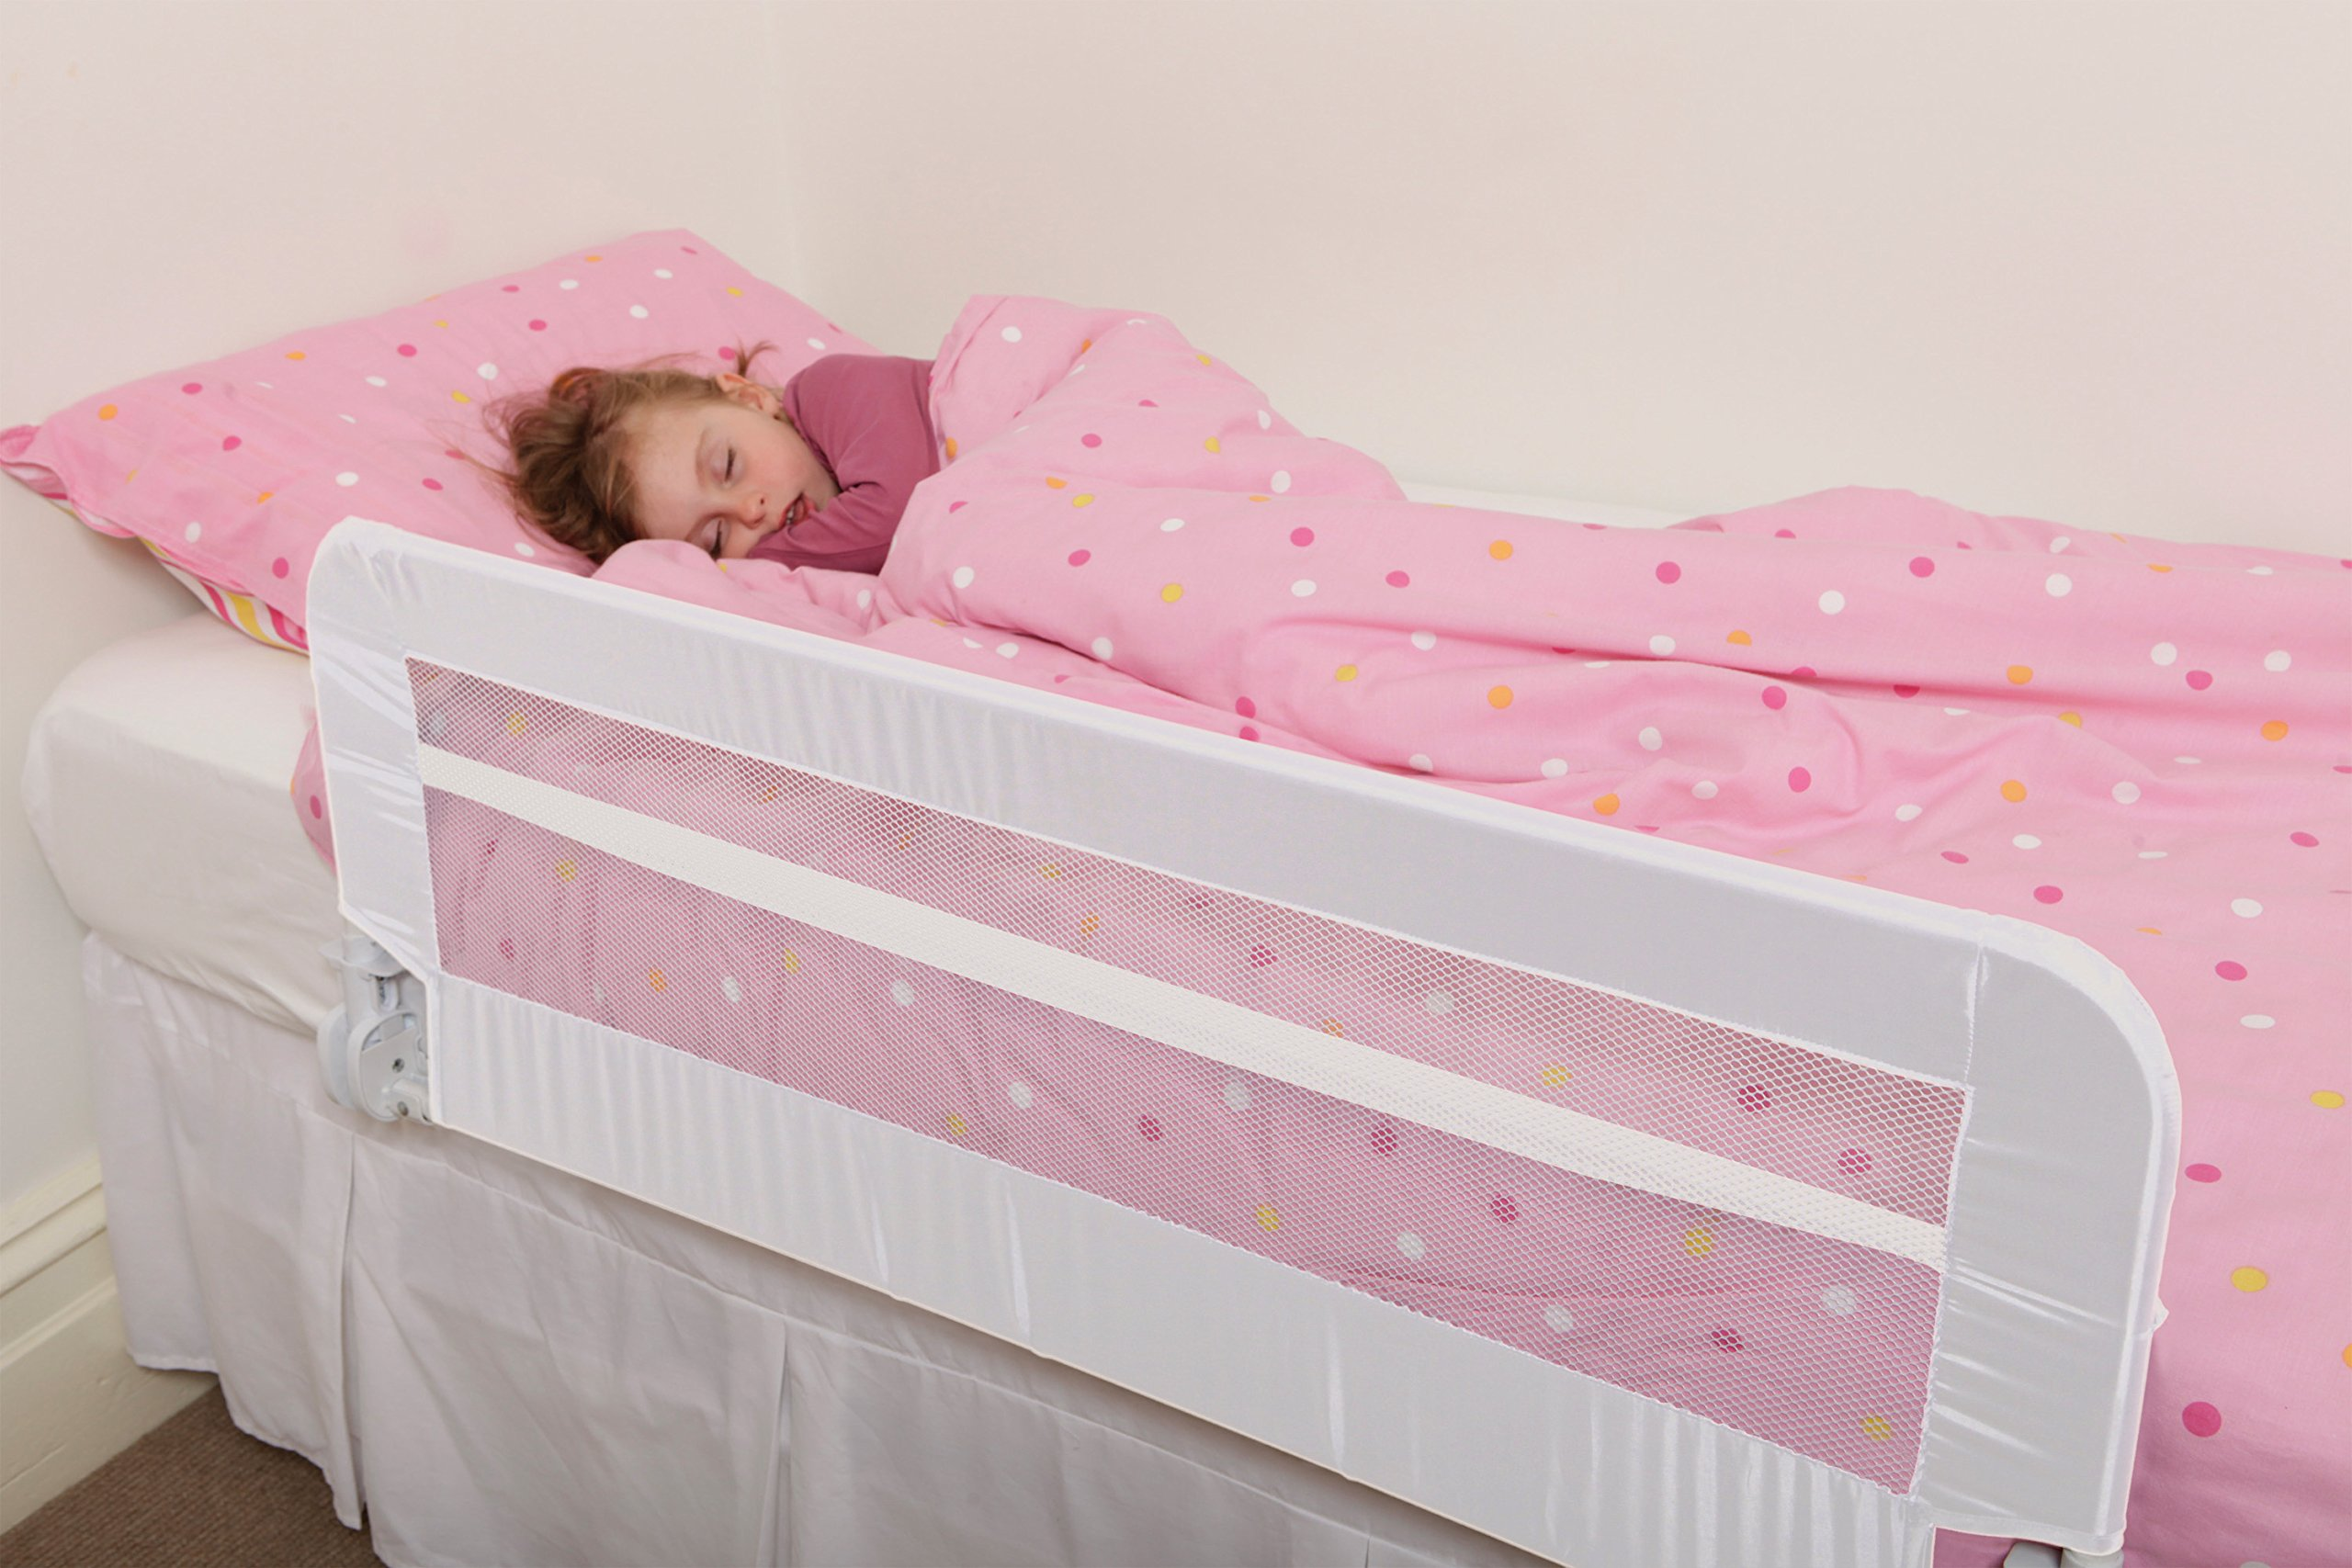 Dreambaby Harrogate Bed Rail, White